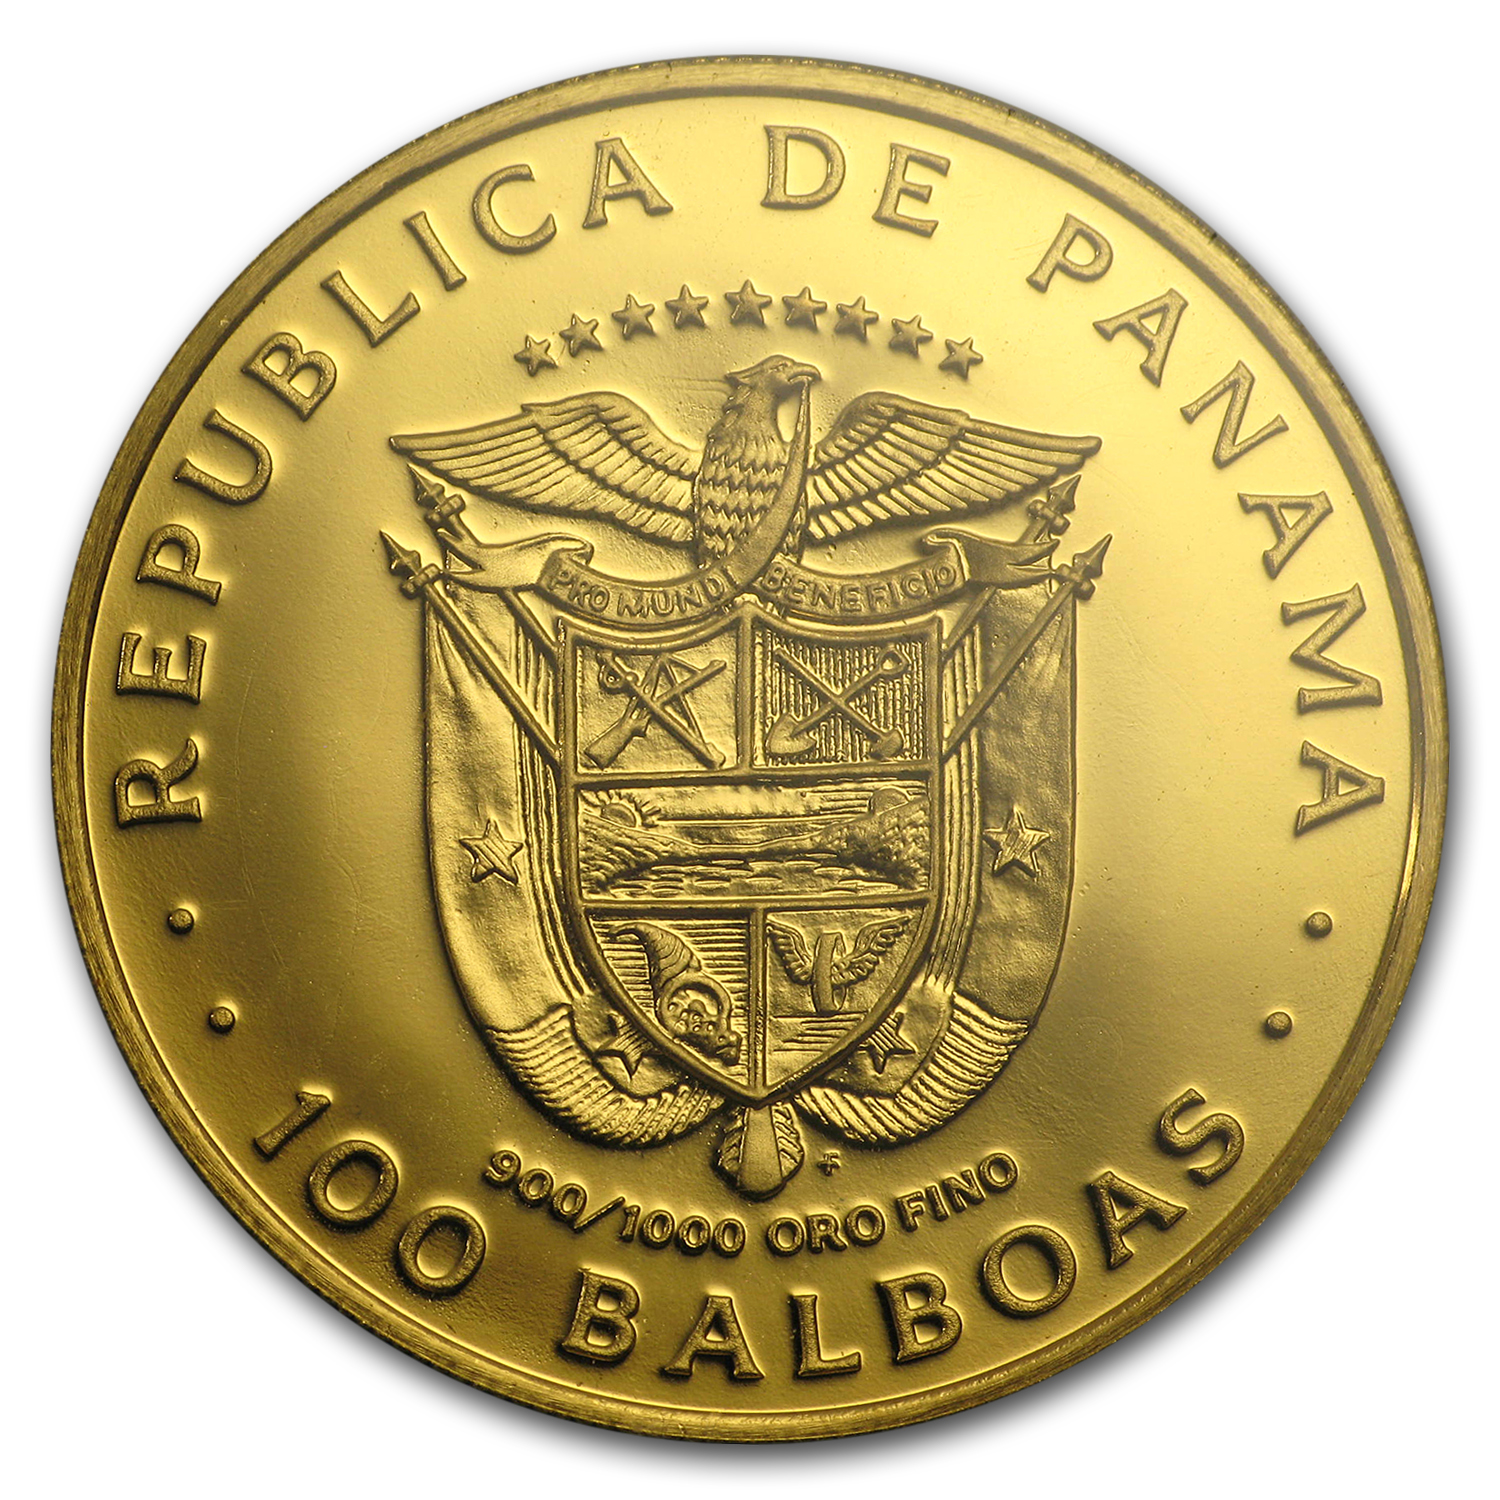 Panama 1975 One Hundred Balboas Gold Coin Proof